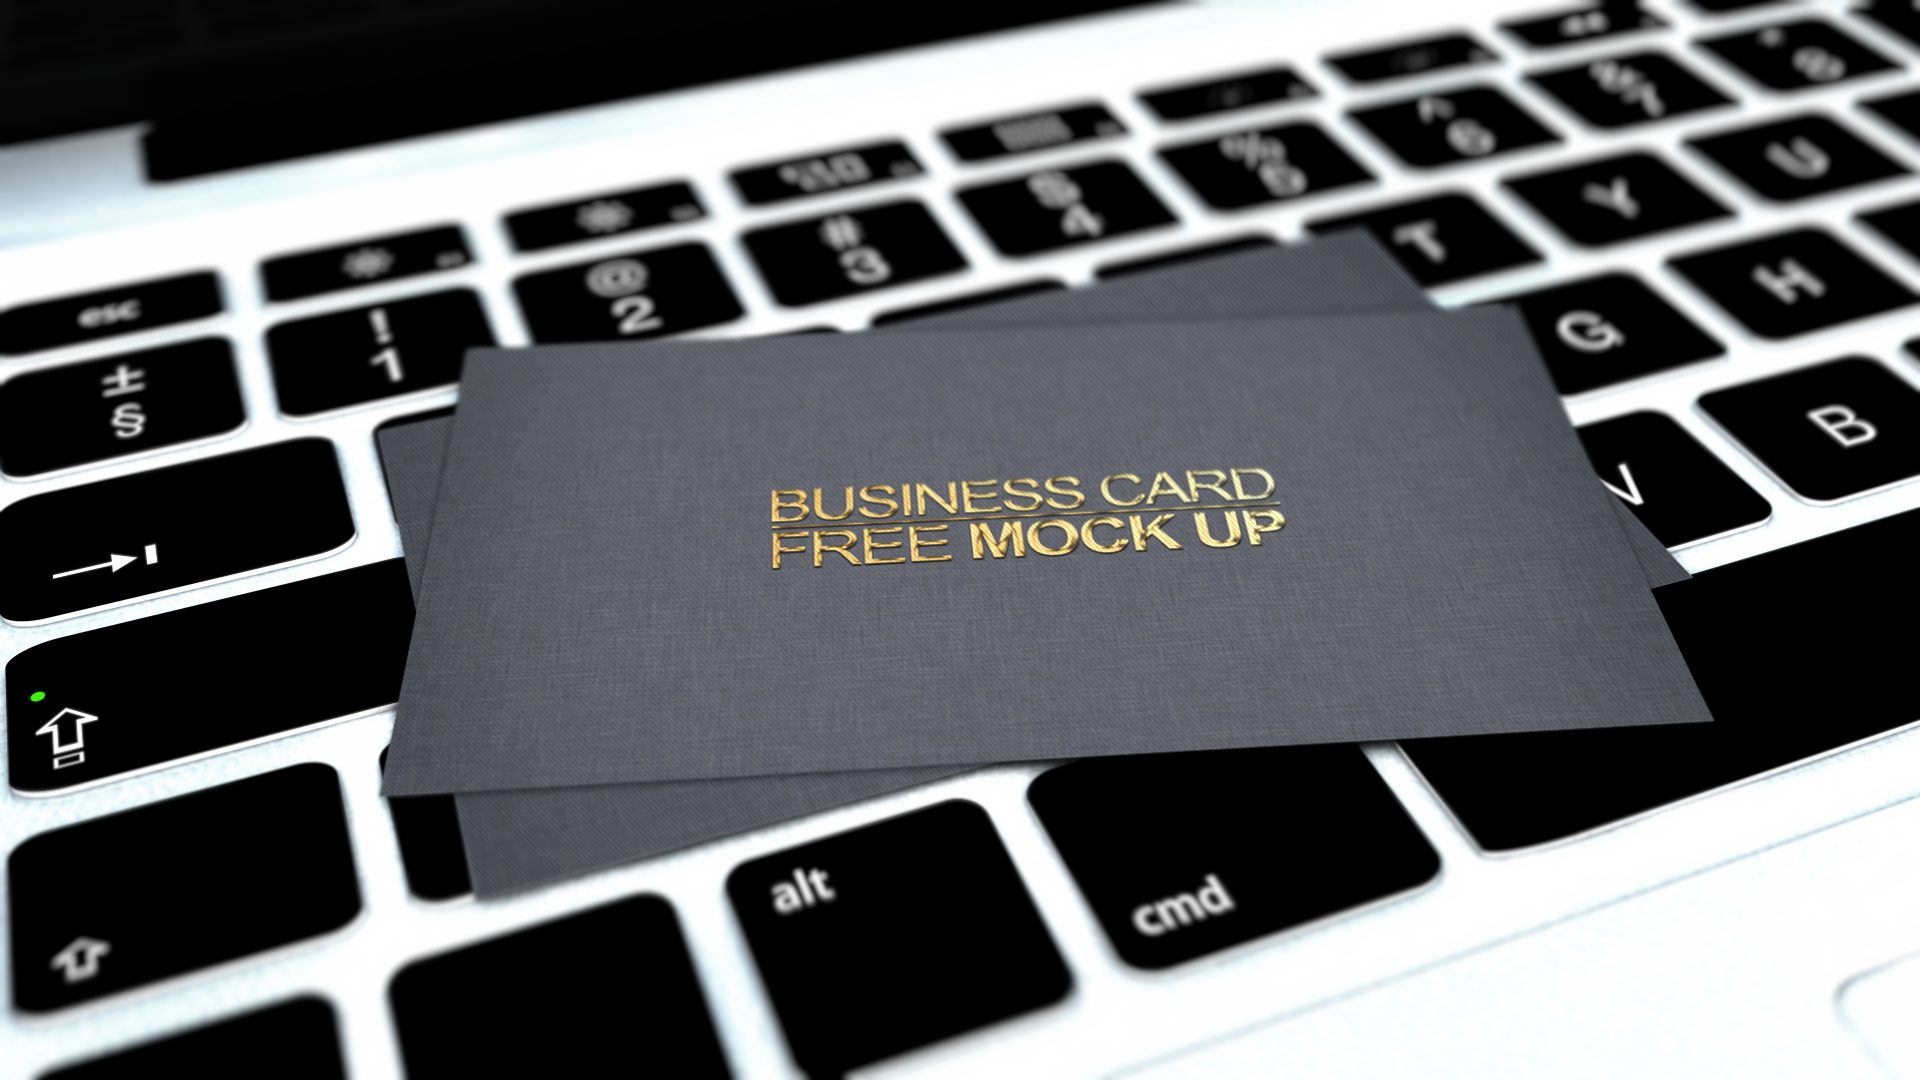 business card free mock up psd macbook by dimkoops on deviantart